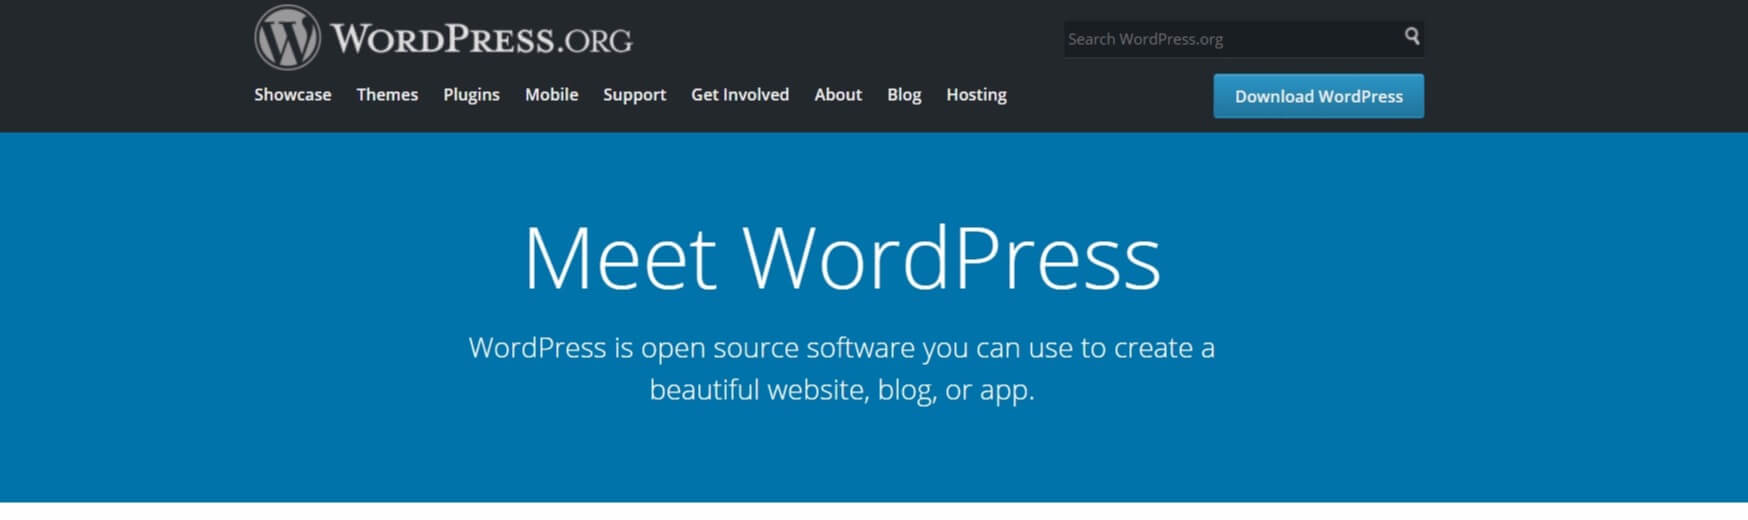 The WordPress homepage